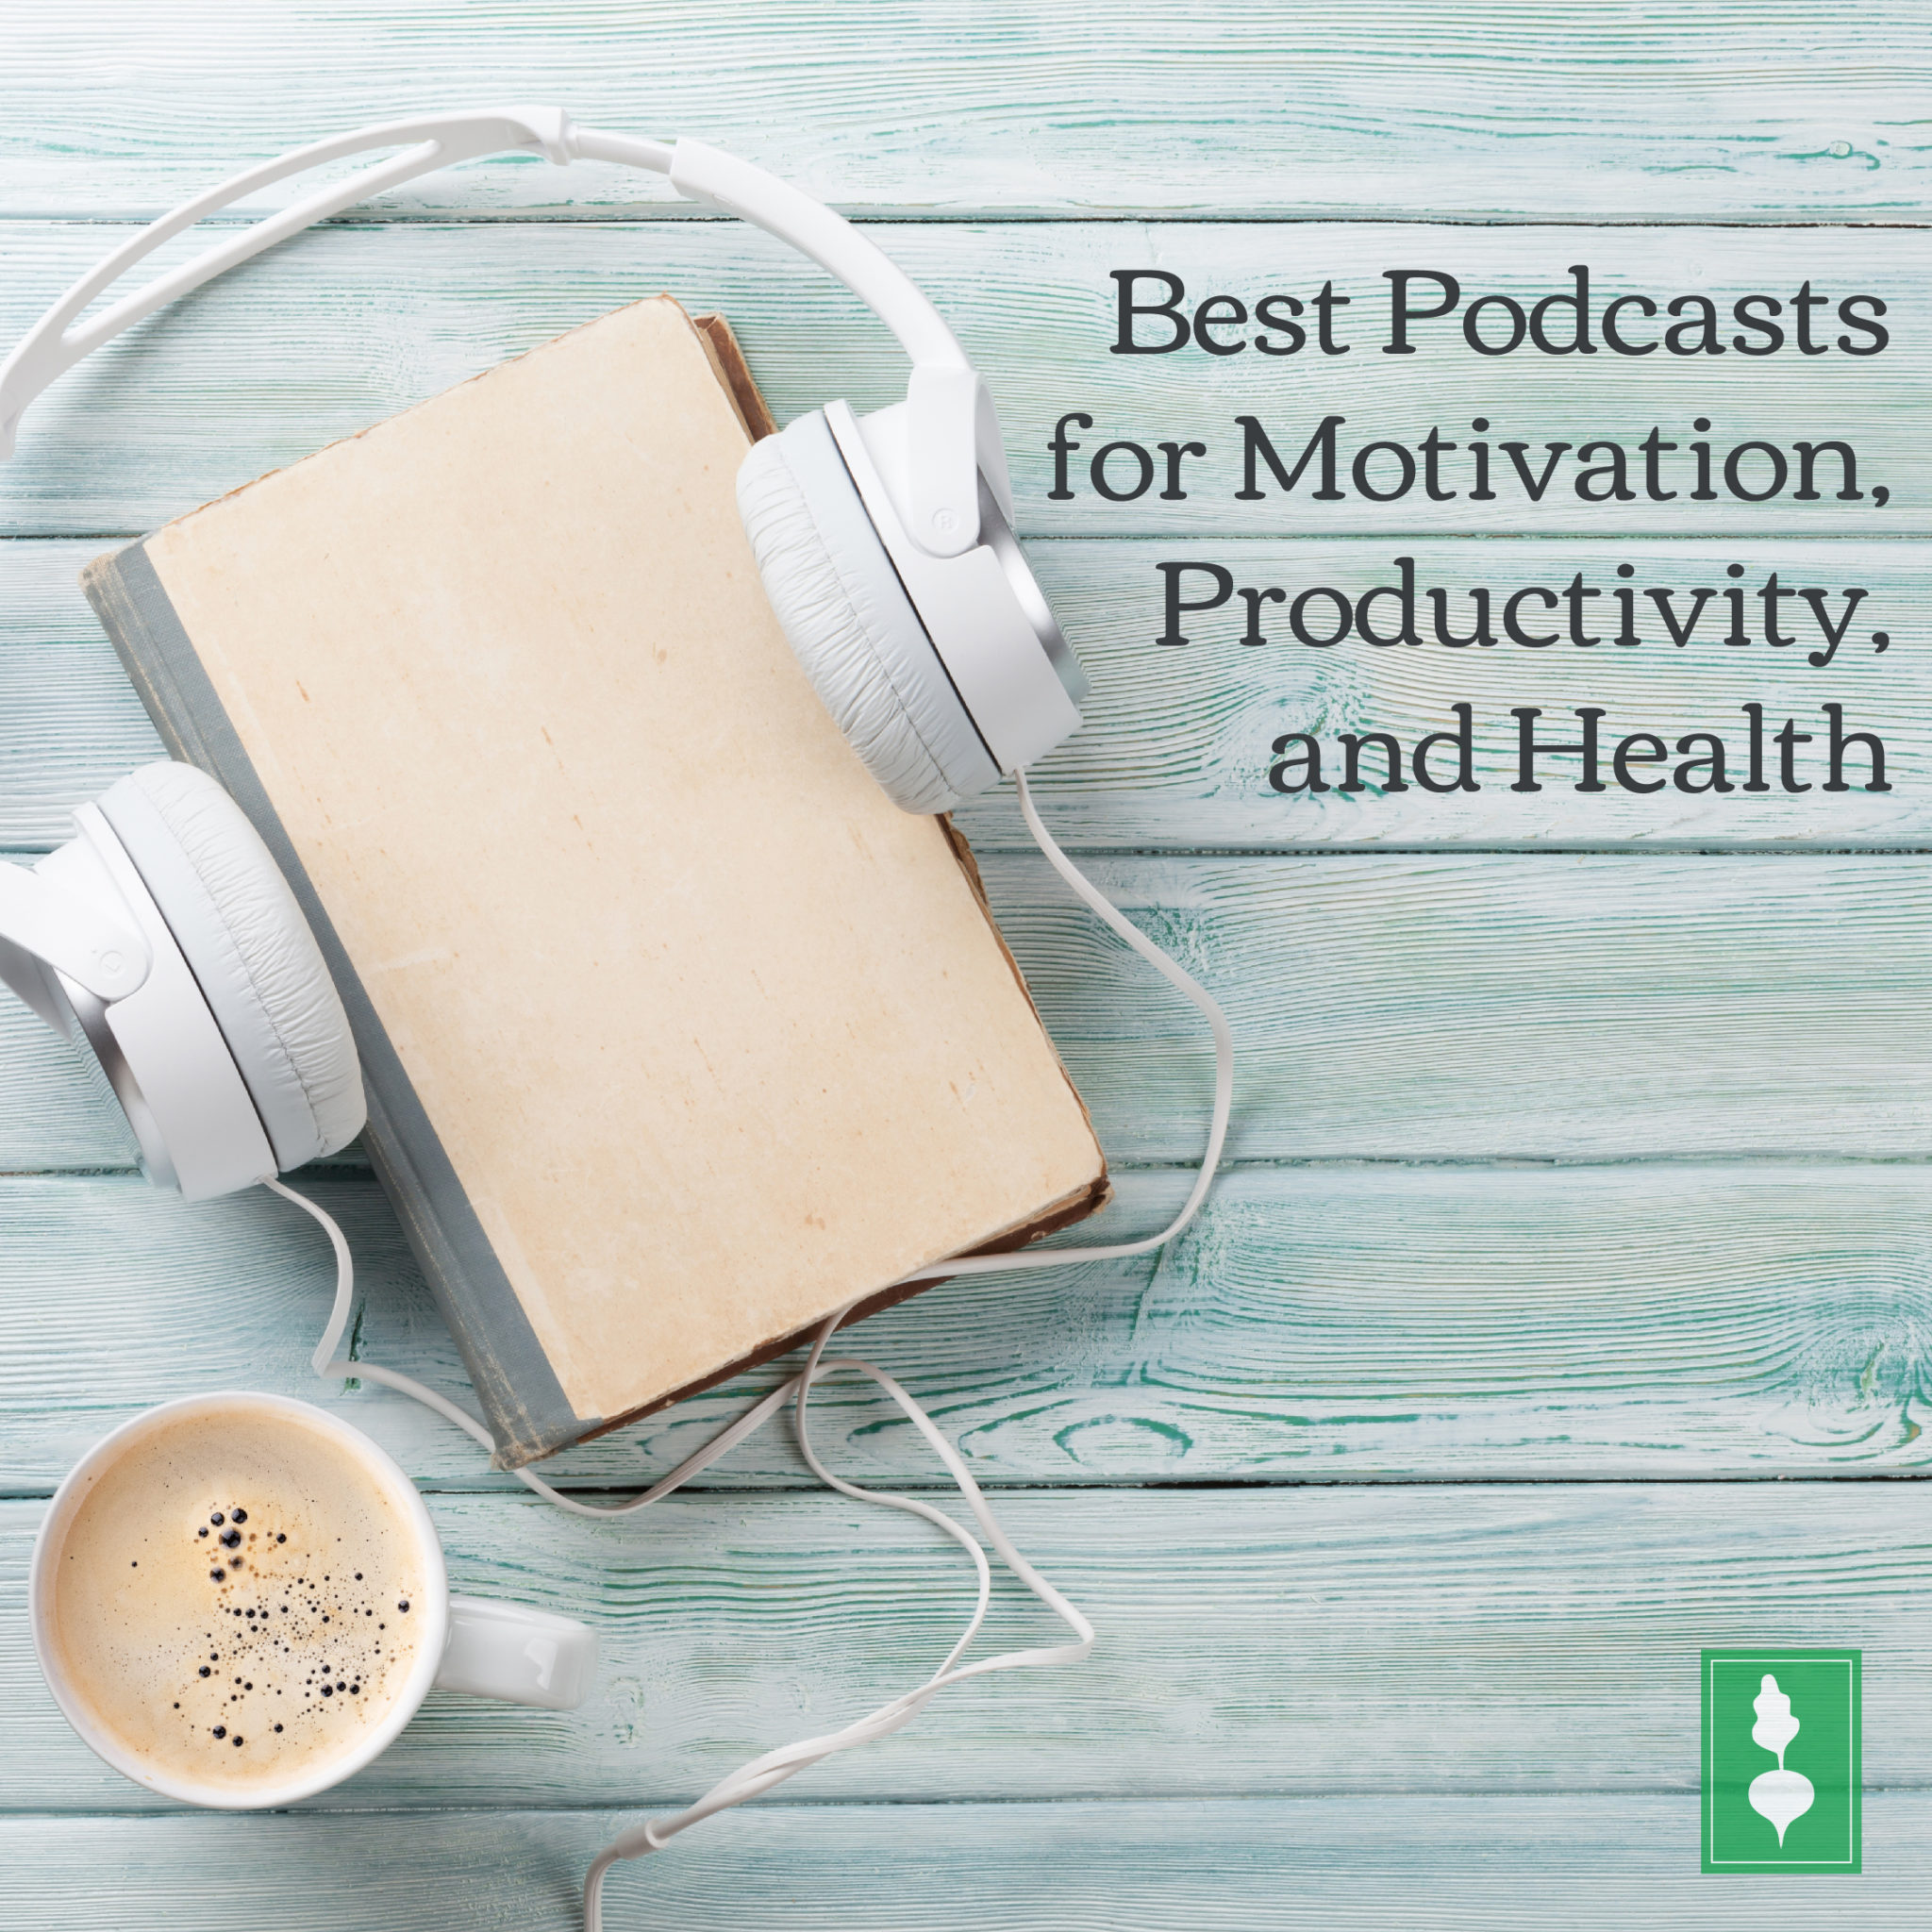 Best Podcasts for Motivation, Productivity, and Health